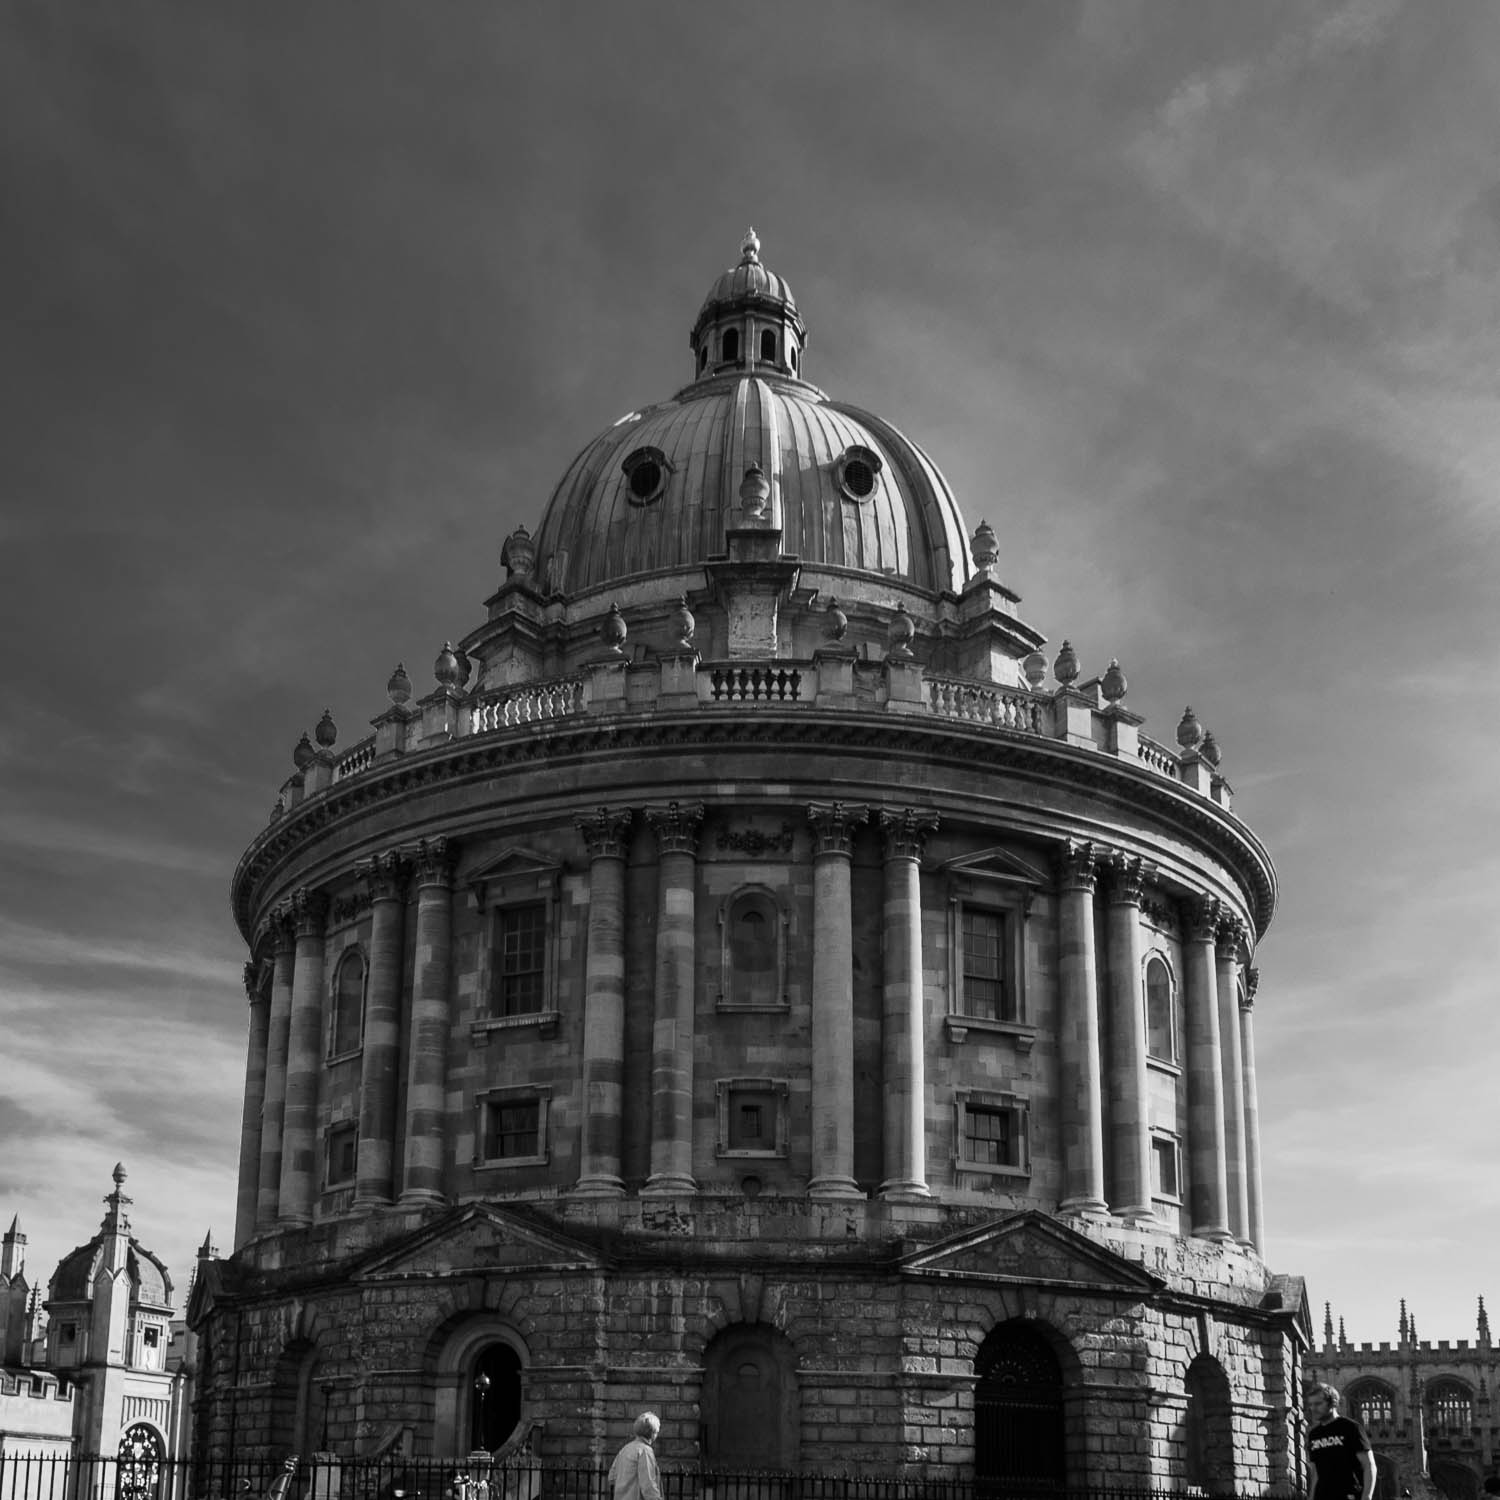 The Radcliffe Camera LDR